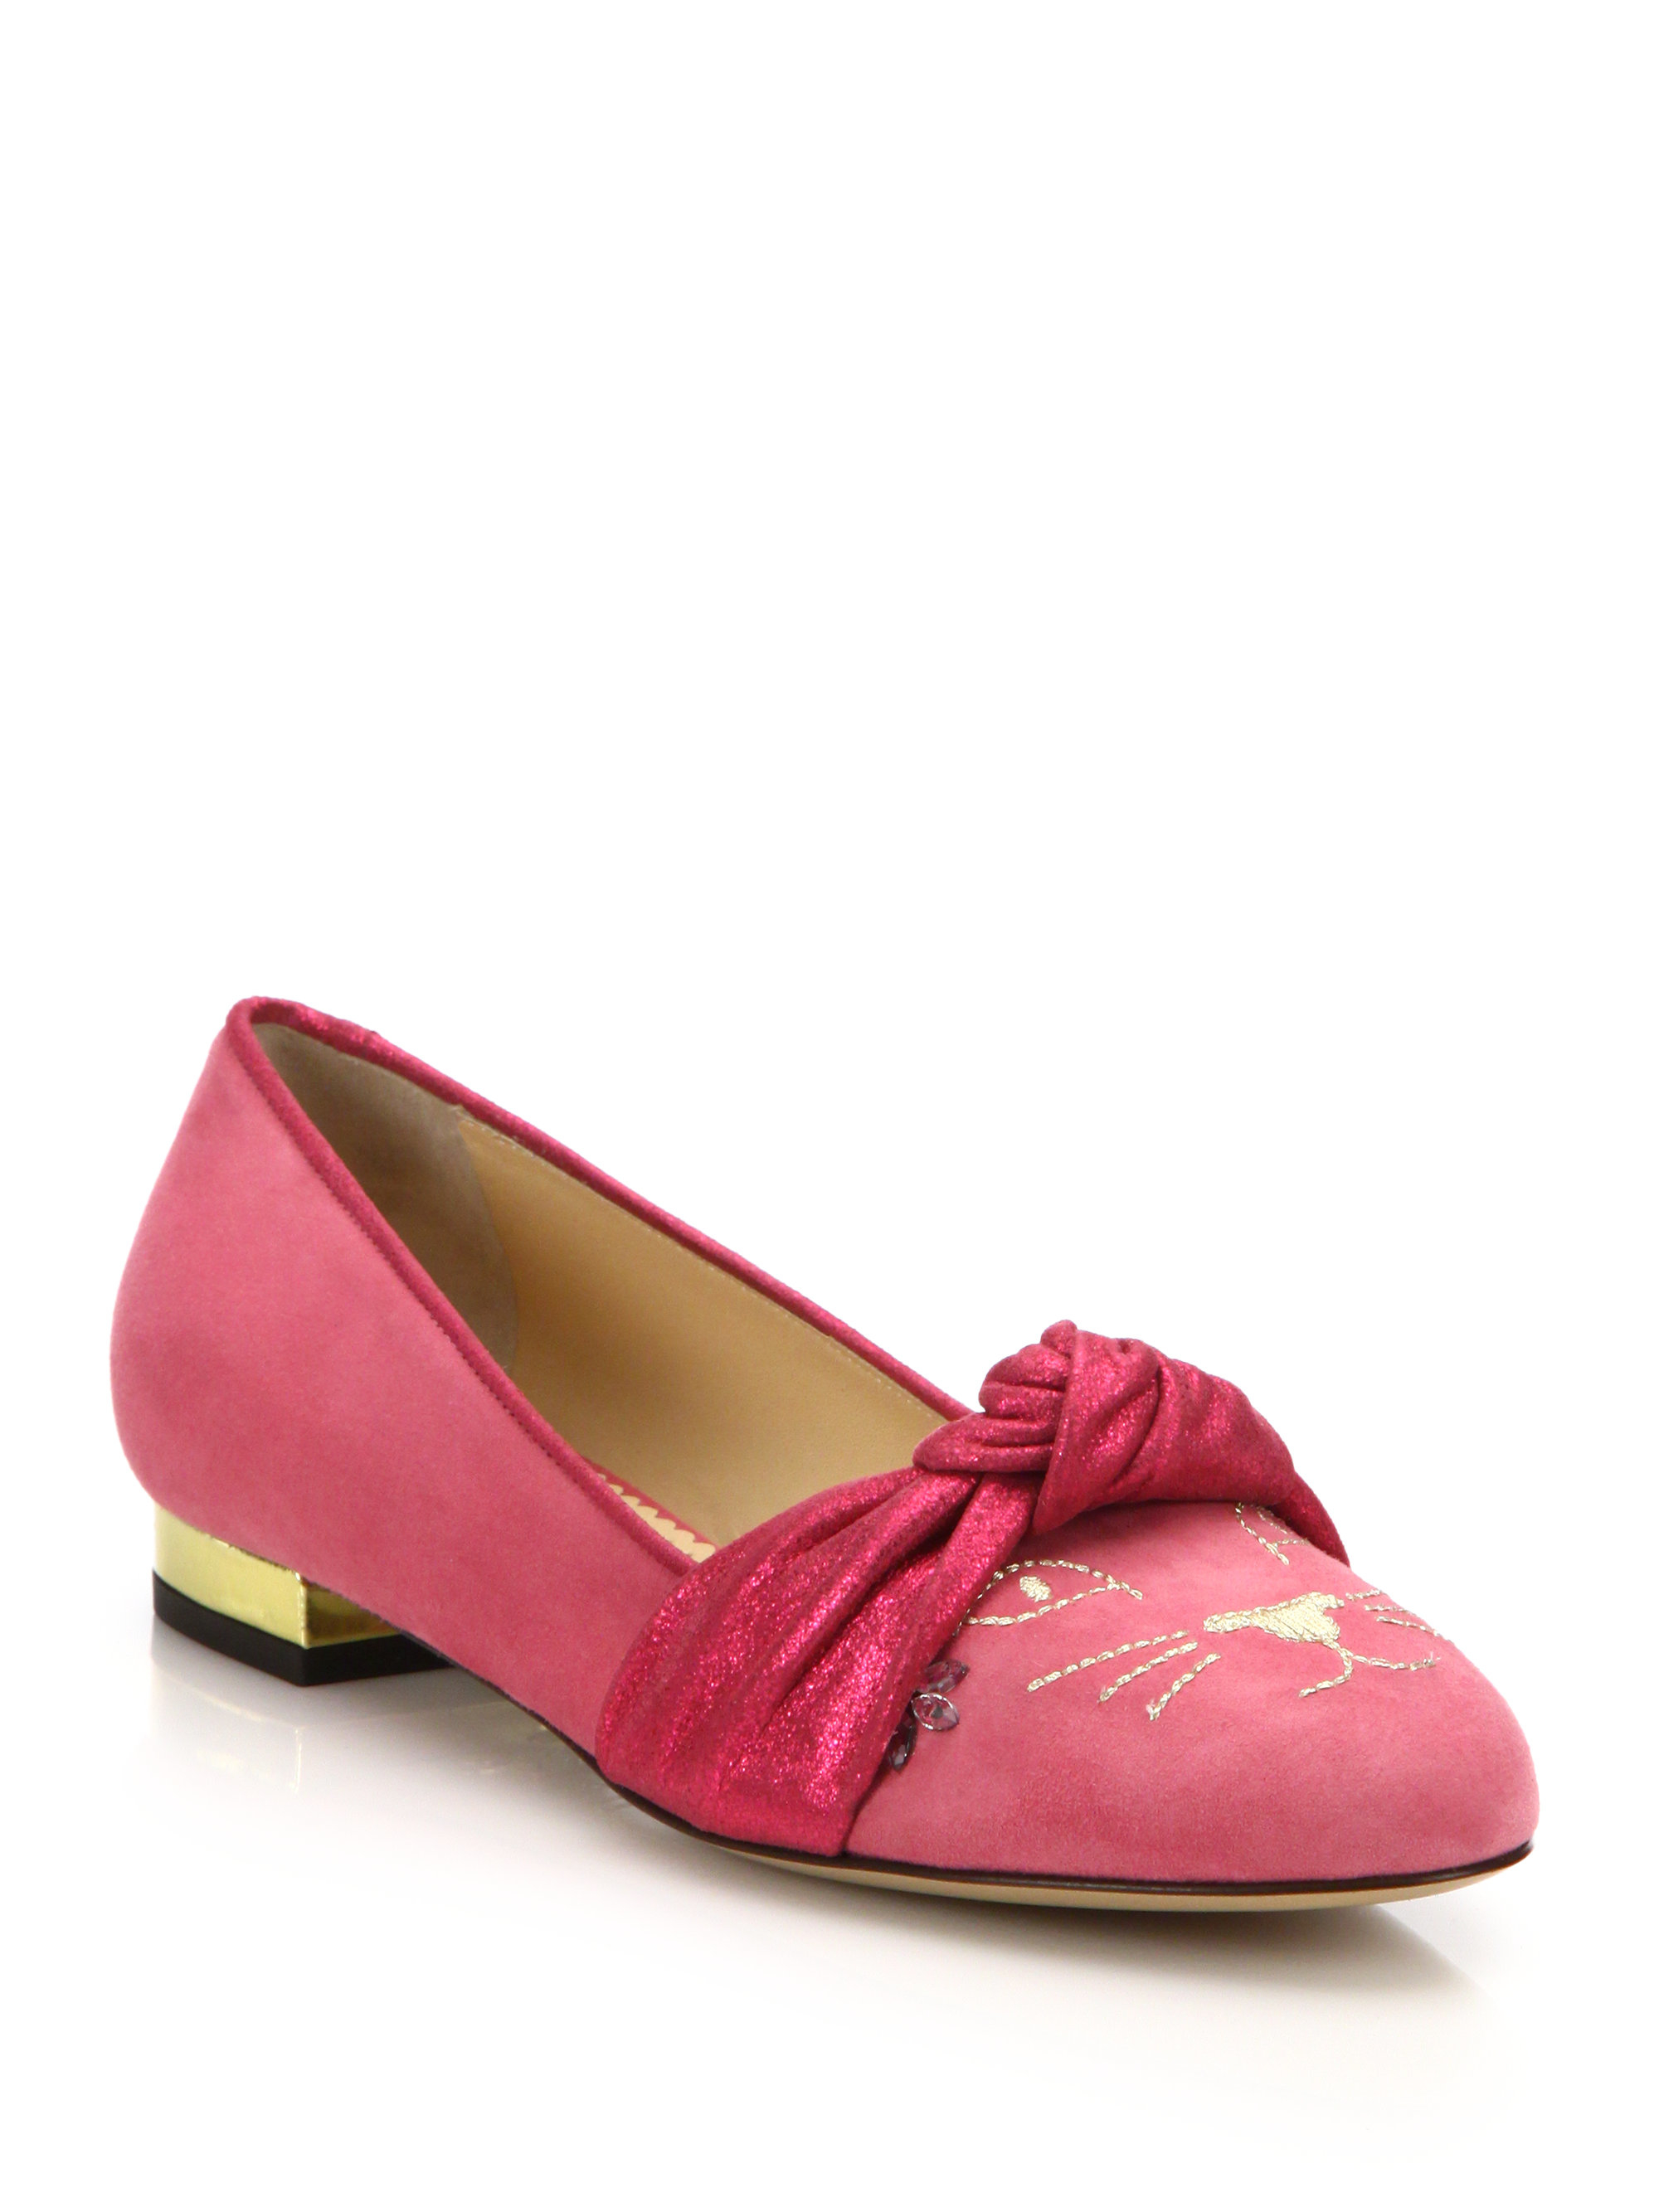 buy cheap footaction Charlotte Olympia Suede Kitty Loafers cheap sale 2014 new i7Xq1